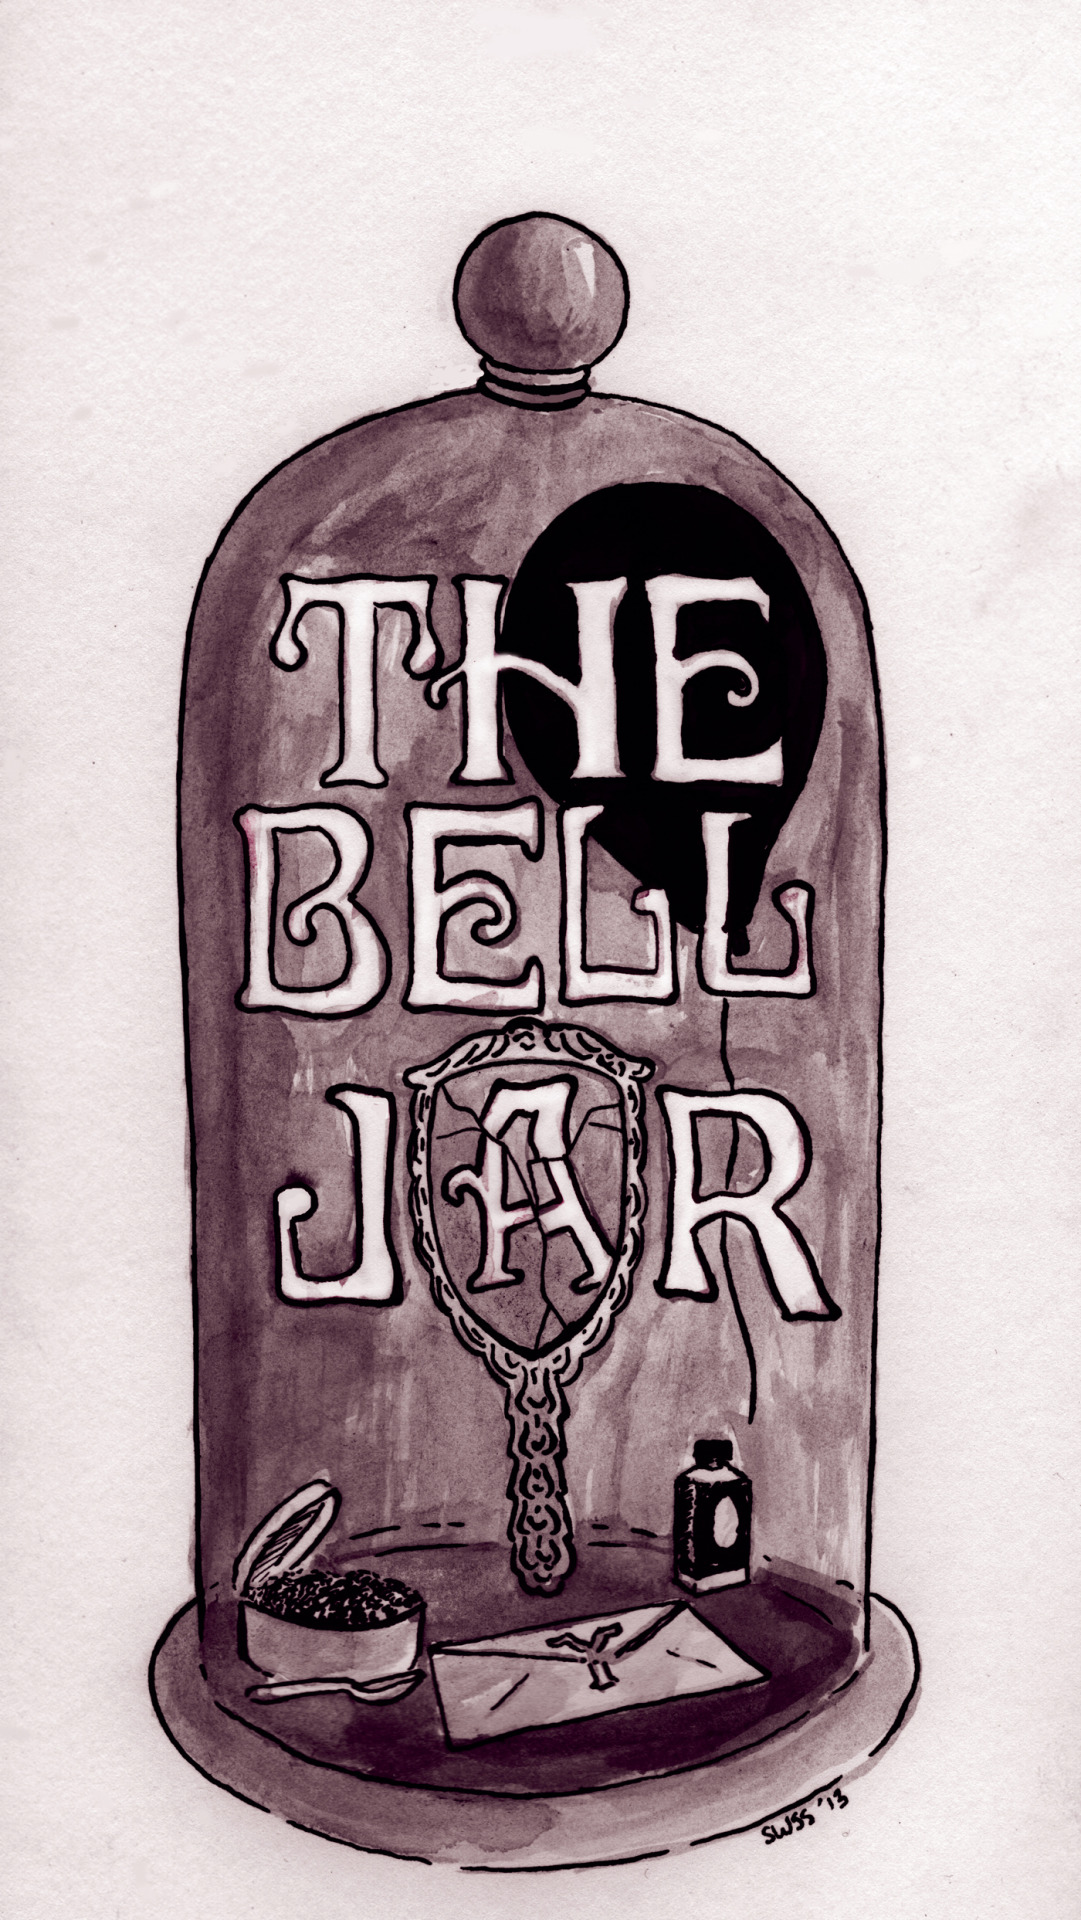 I did an Illustration for what I think The Bell Jar's cover should look like.